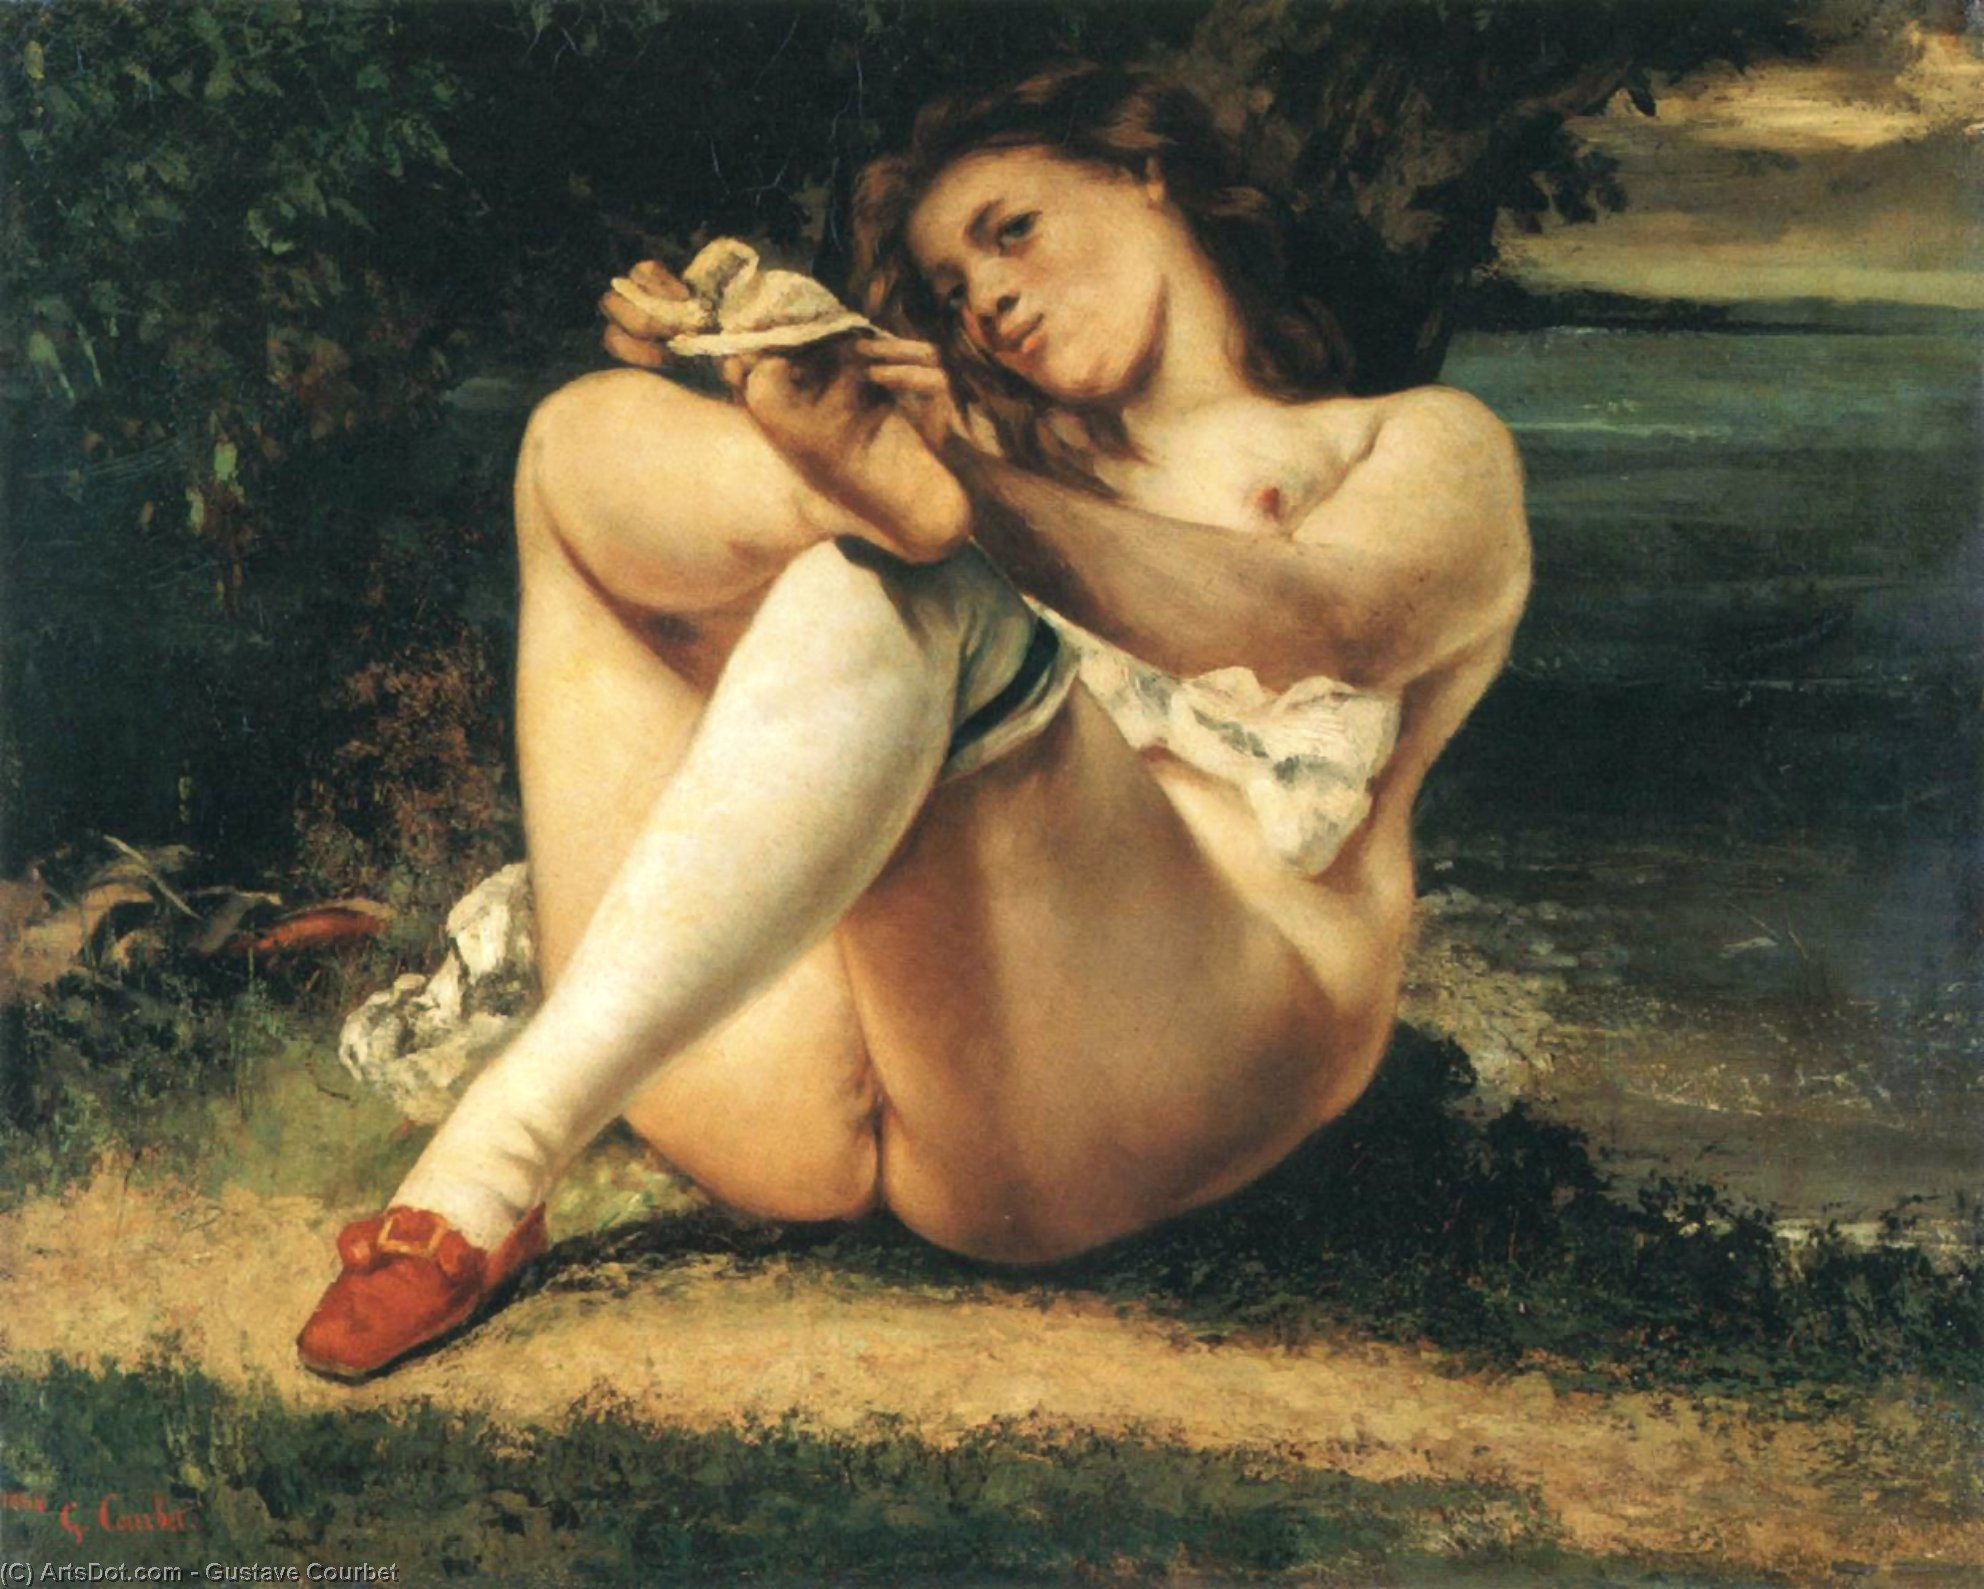 Woman with White Stockings, 1861 by Gustave Courbet (1819-1877, France) | Reproductions Gustave Courbet | ArtsDot.com